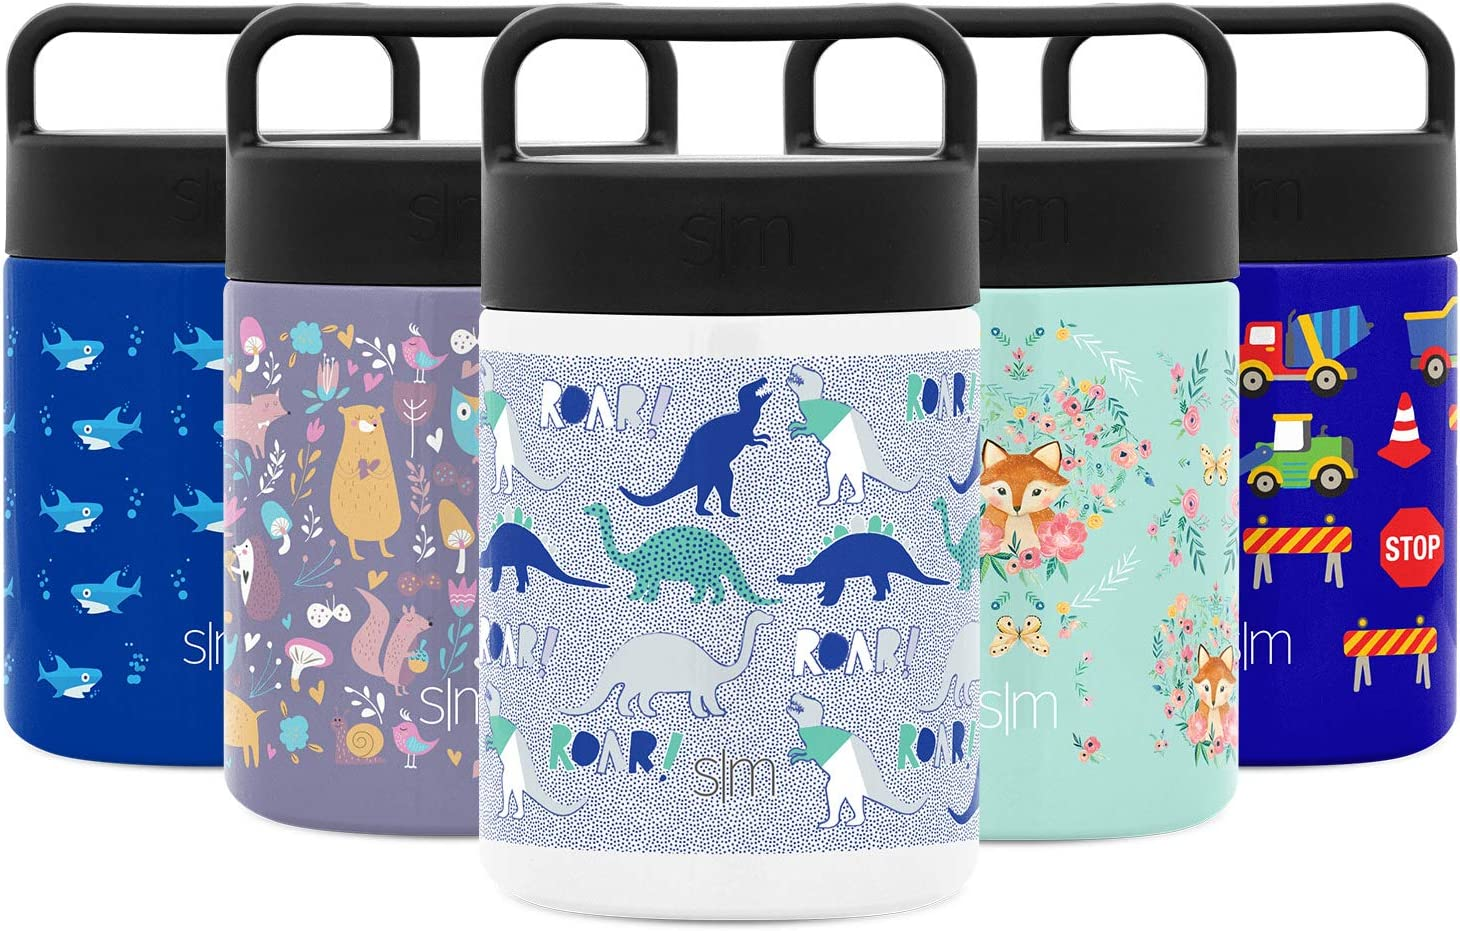 Simple Modern Provision Insulated Food Jar Thermos Leak Proof Stainless Steel Storage Lunch Container, 12oz with Handle Lid, Kids: Dinosaur Roar